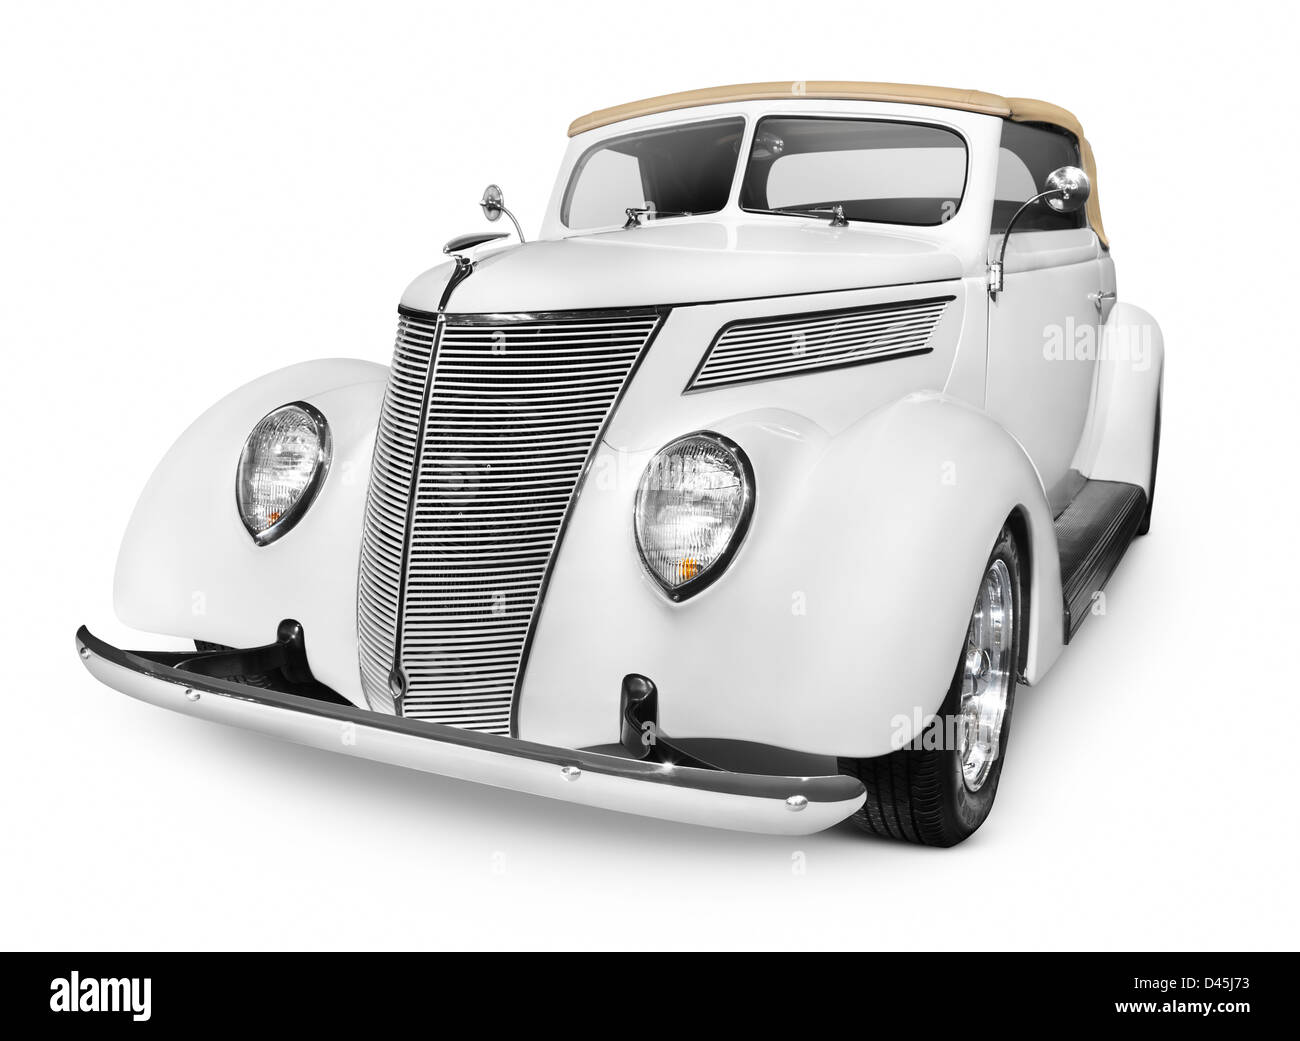 Ford Cabriolet Classic Convertible Vintage Car Isolated On